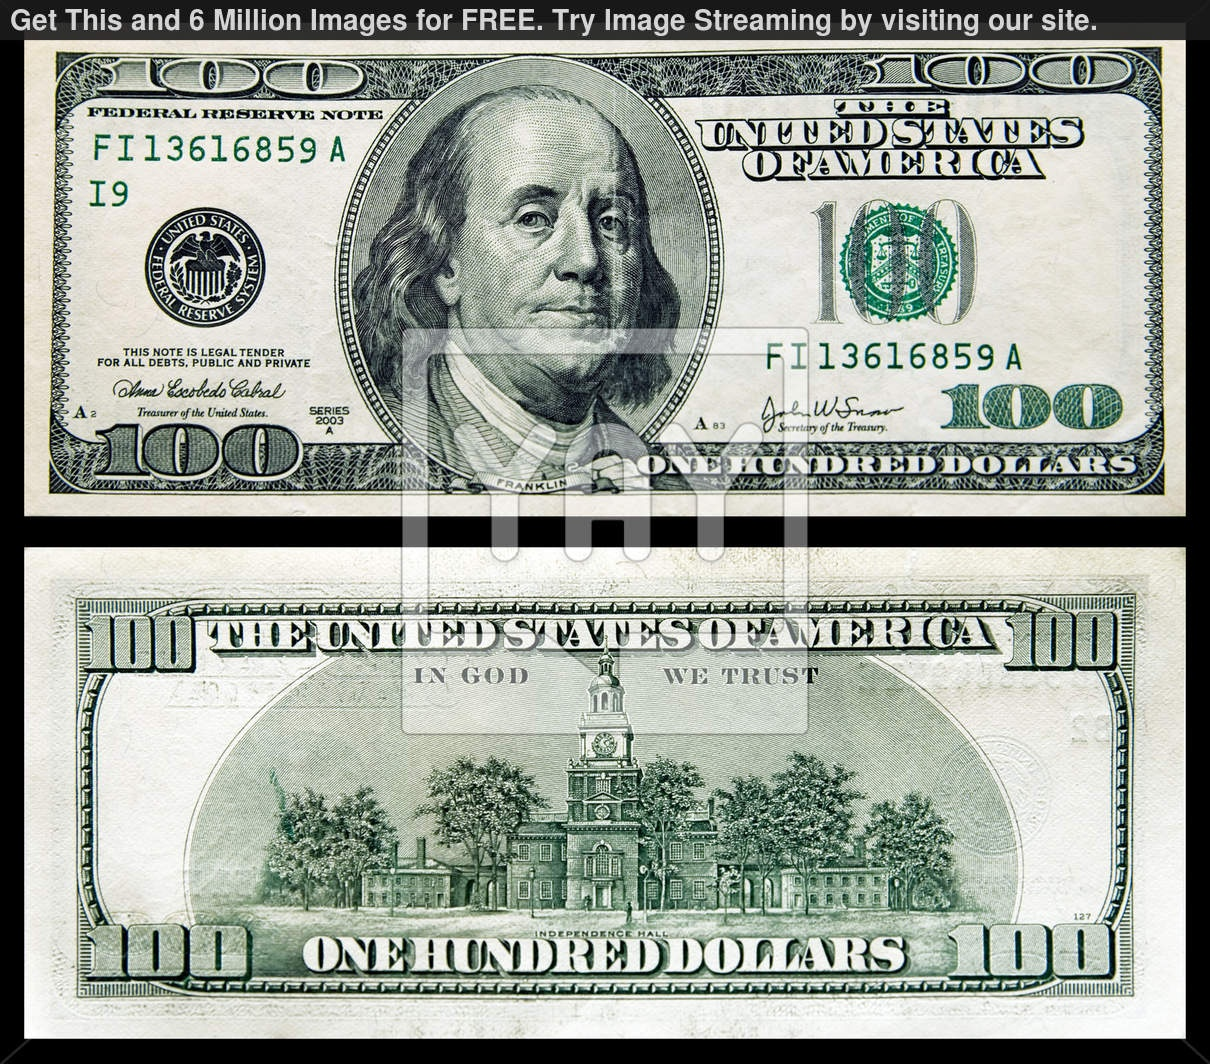 14 Hundred Dollar Bill Psd Images - 100 Dollar Bill Without Face - 100 Dollar Bill Printable Free